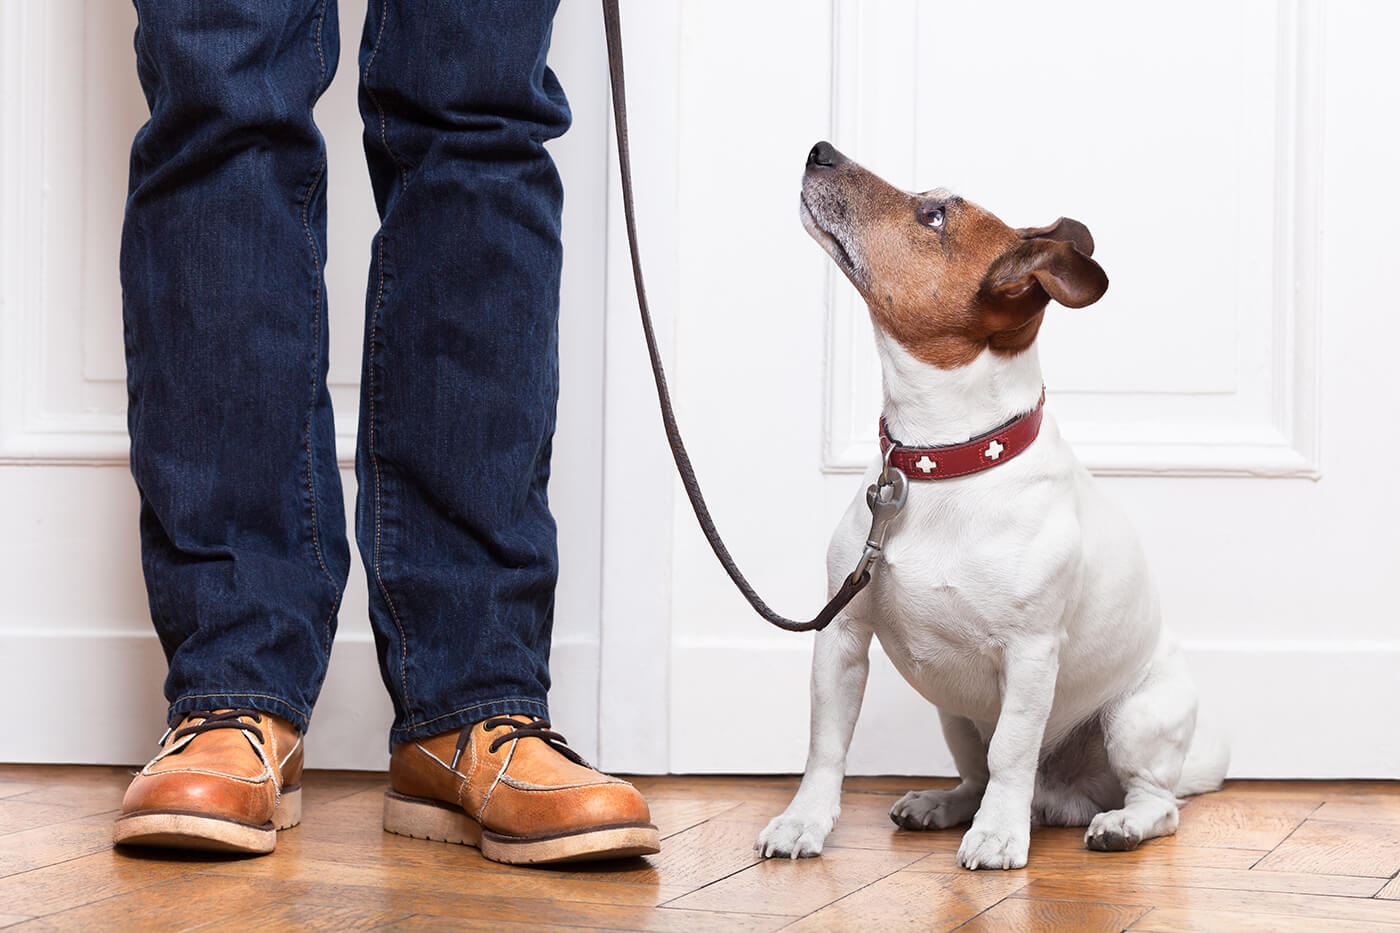 dog at door ready for walk